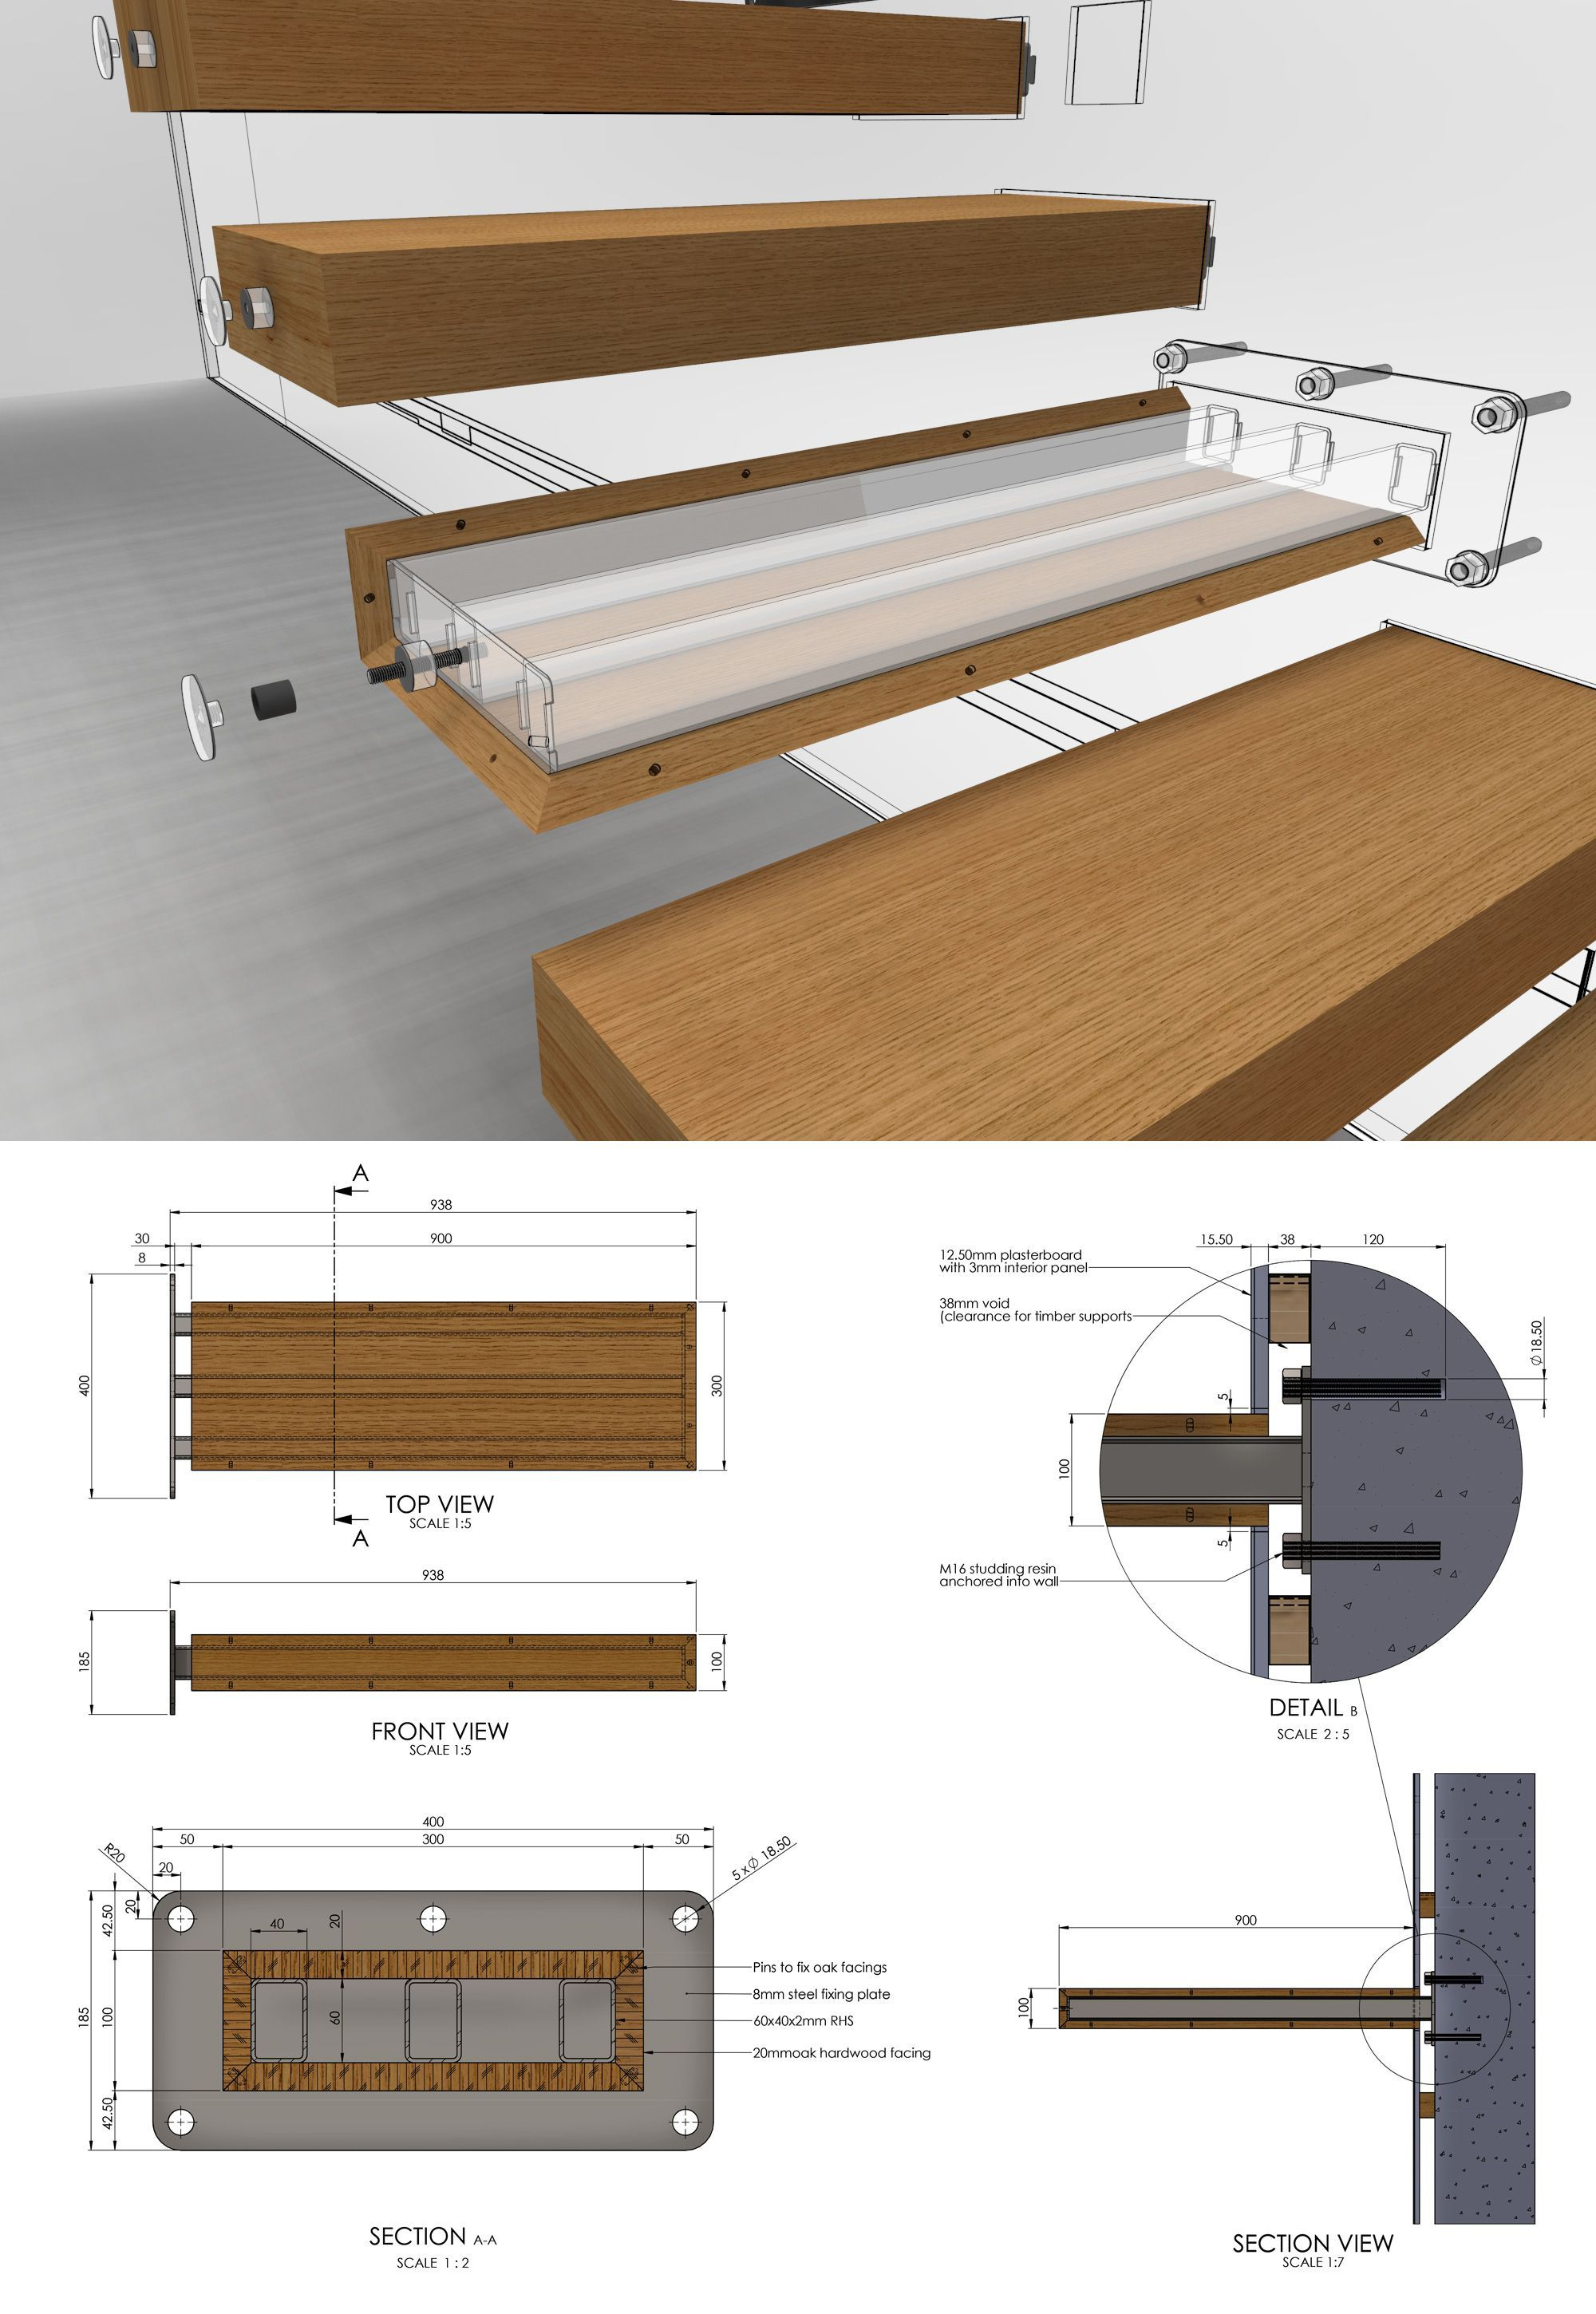 To Learn How To Design A Cantilevered Staircase Visit Homedesigntutorials Com Design Construction Archi Stairs Design Stairs Design Modern Staircase Design